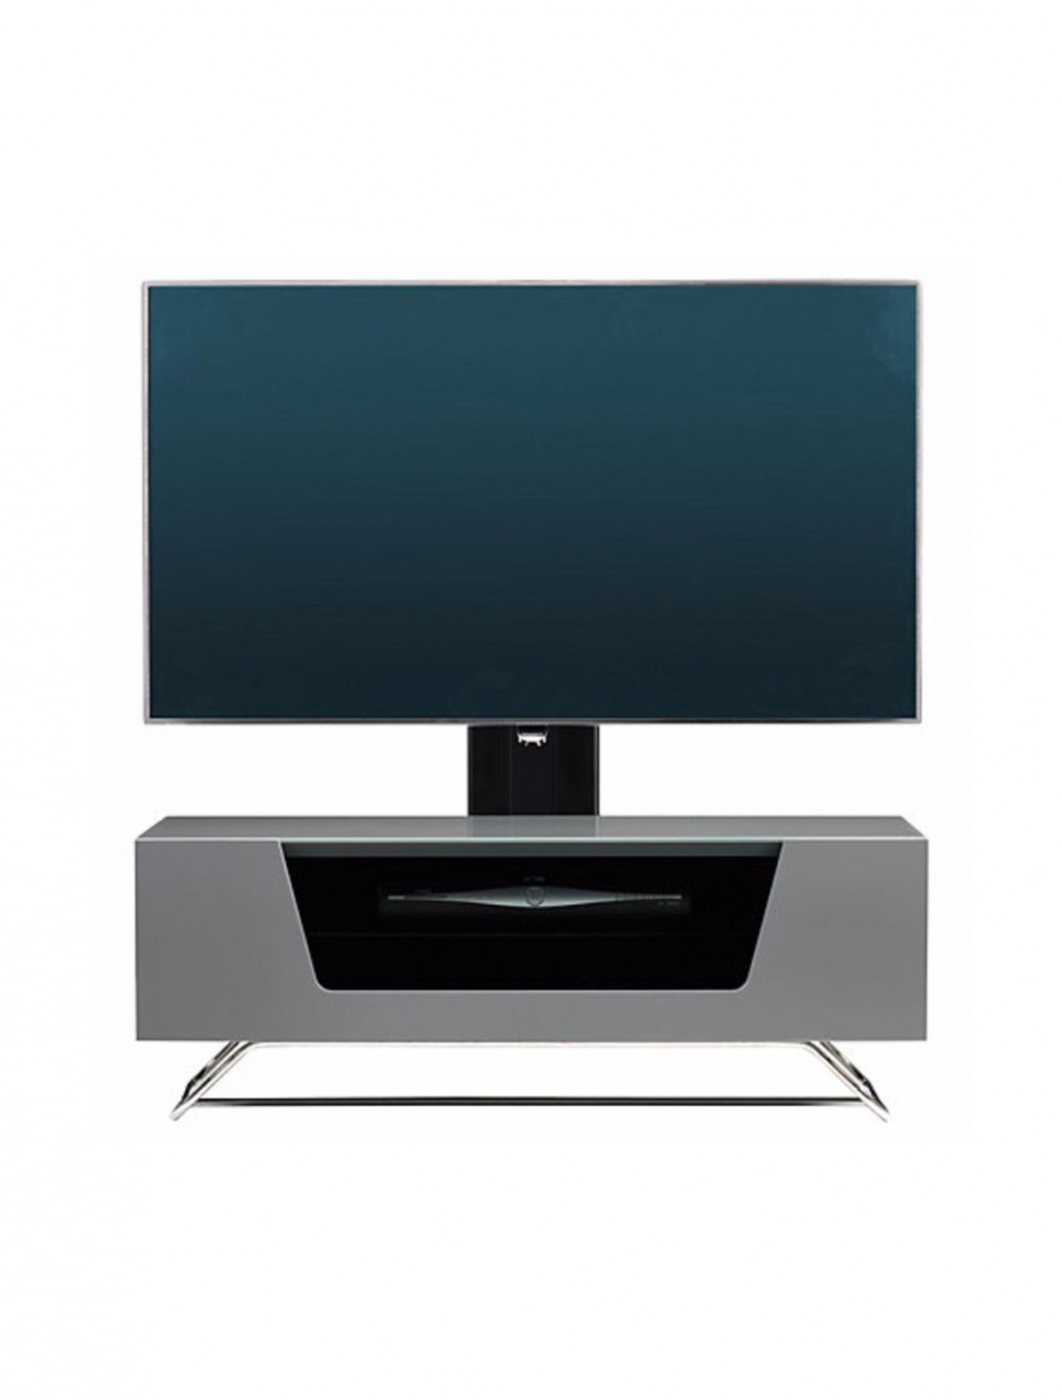 Alphason Chromium Cantilever Tv Stand Cro2 1200bkt Gr Pertaining To Chromium Tv Stands (View 10 of 20)